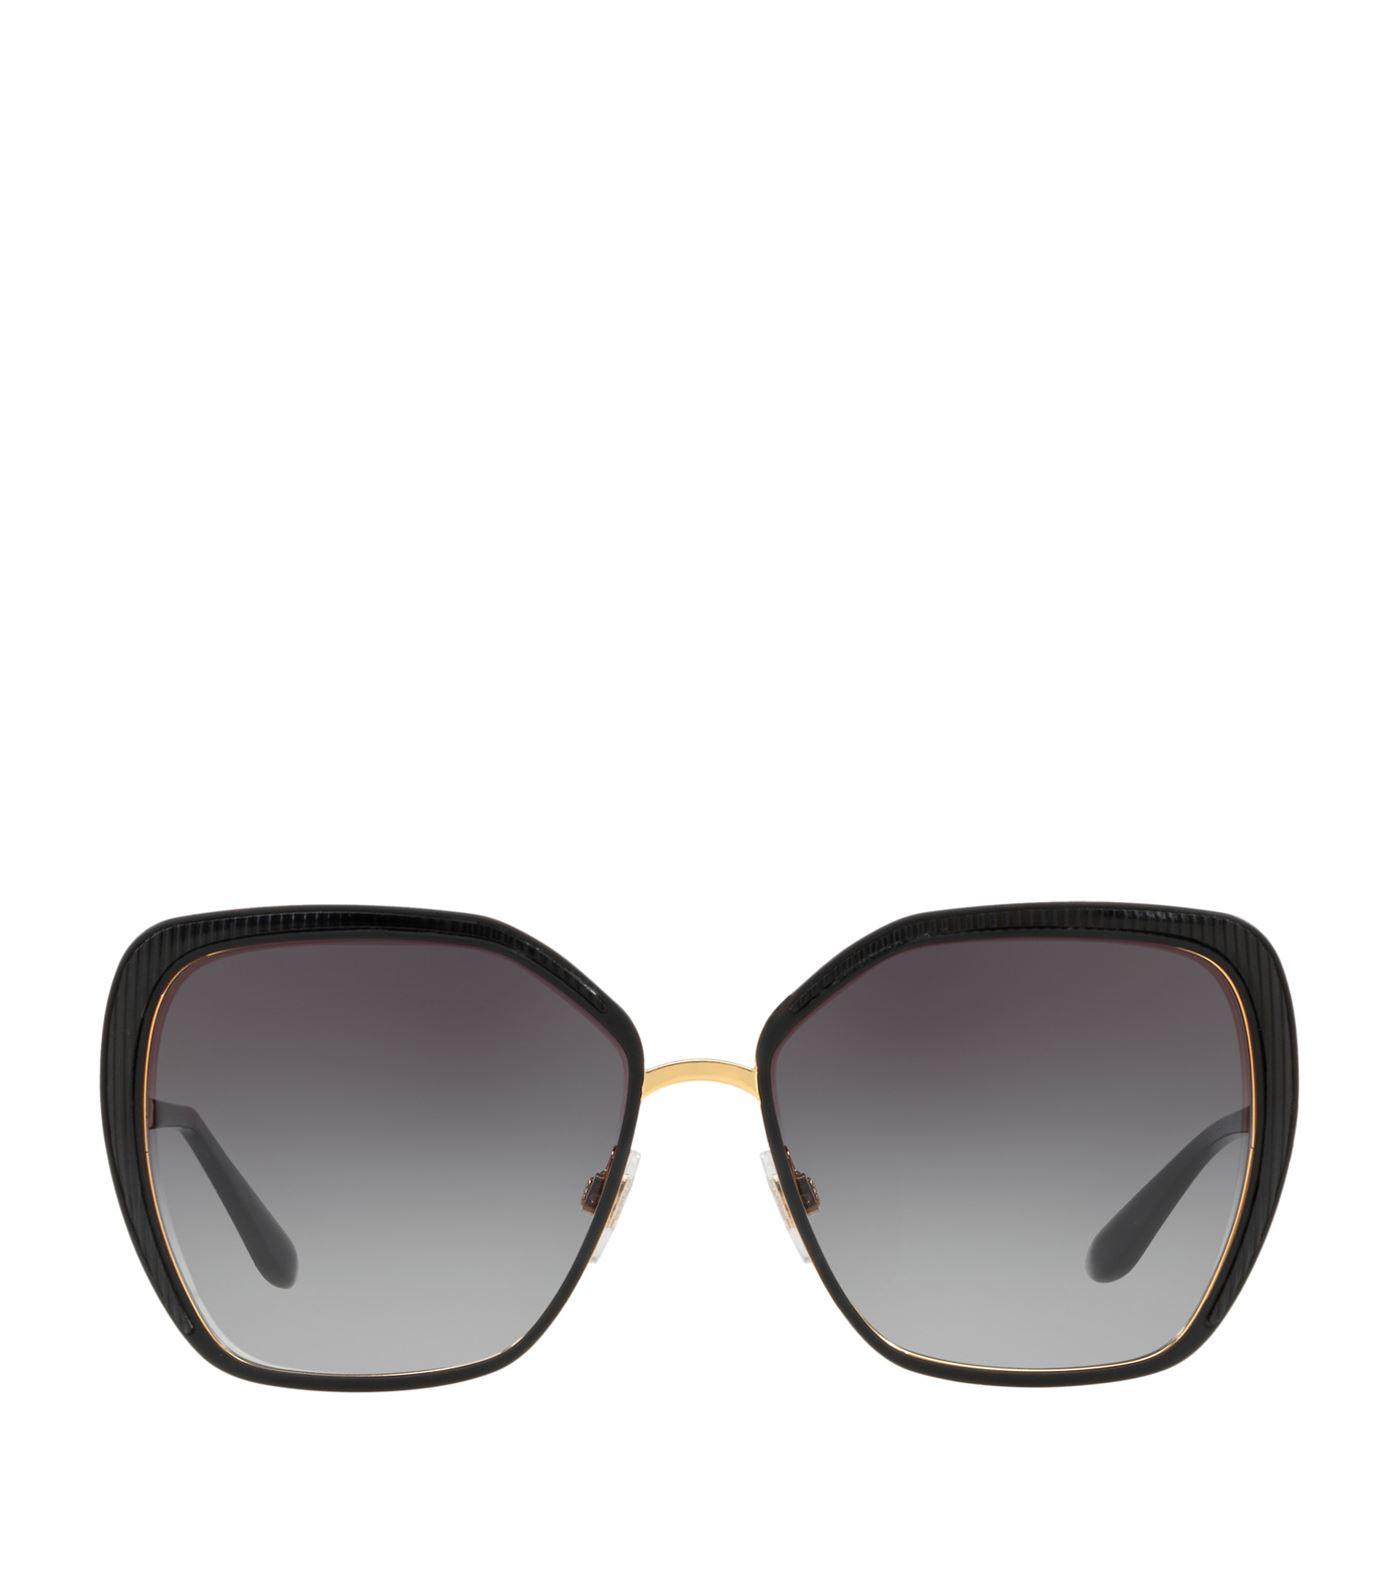 219a7c46d53a Lyst - Dolce   Gabbana Oversized Square Sunglasses in Black